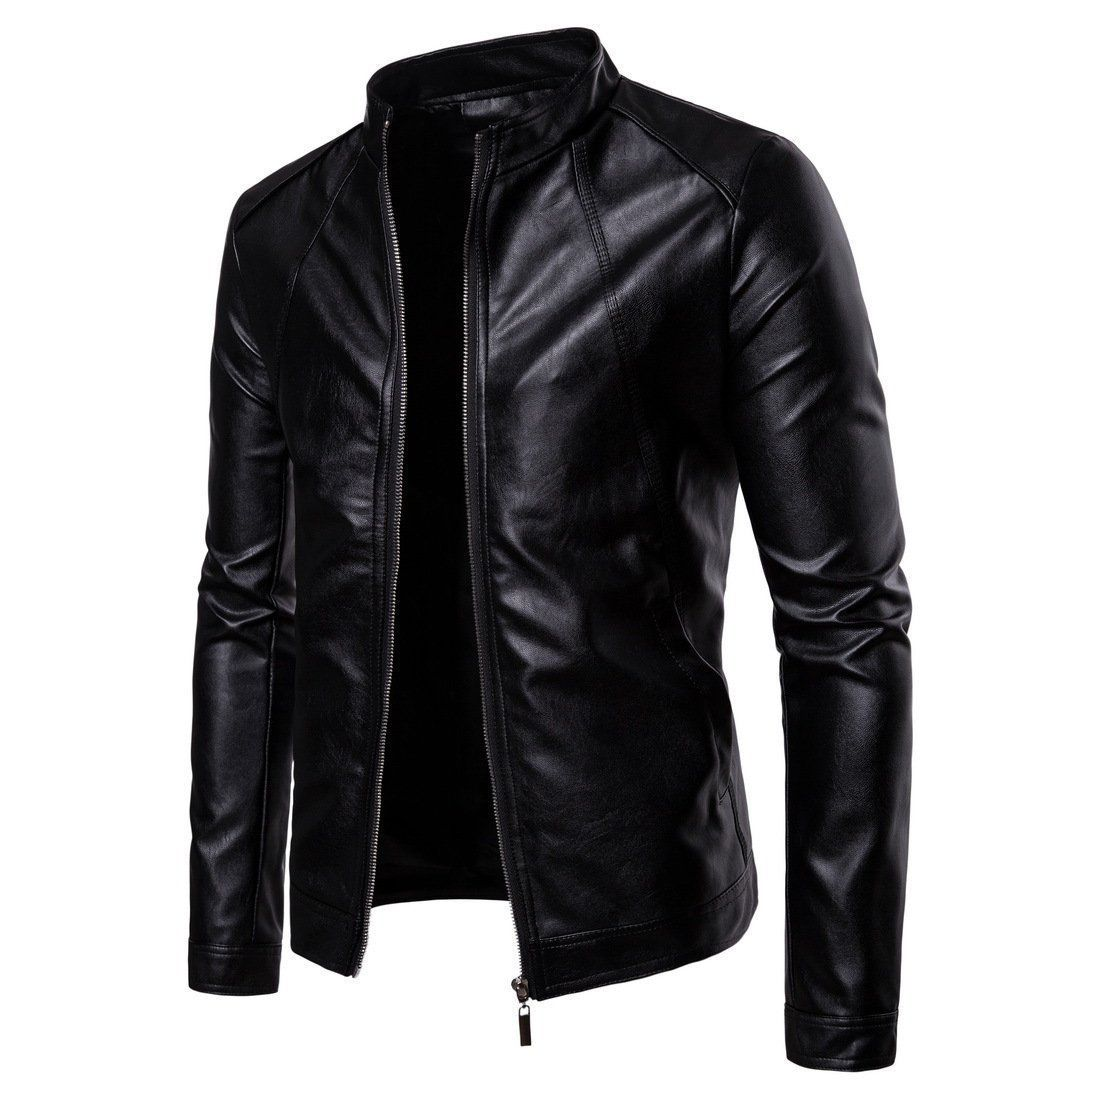 Fashion Cool Plain Leather Zipper Lapel Collar Jacket In 2021 Leather Jacket Men Business Casual Coat Mens Outfits [ 1100 x 1100 Pixel ]